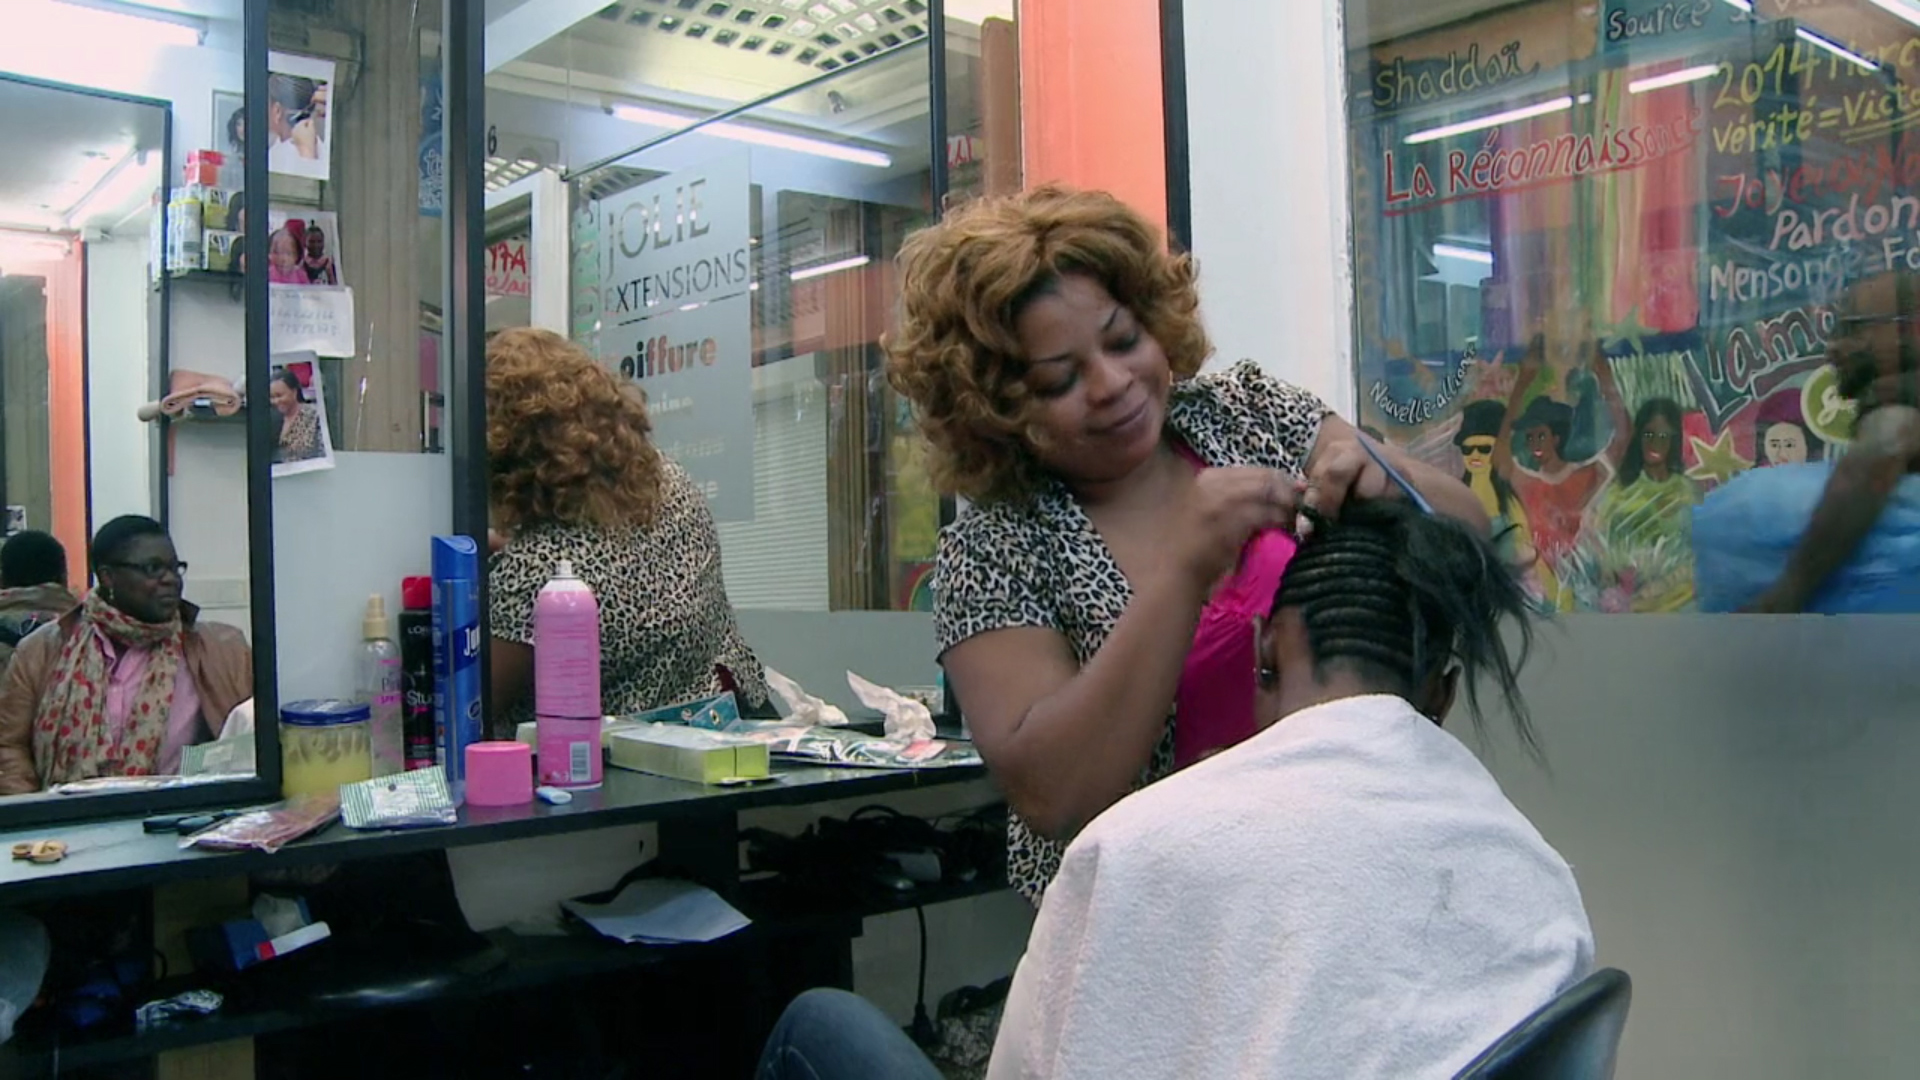 Chez Jolie Coiffure: Understanding the Push and Pull of International Migration